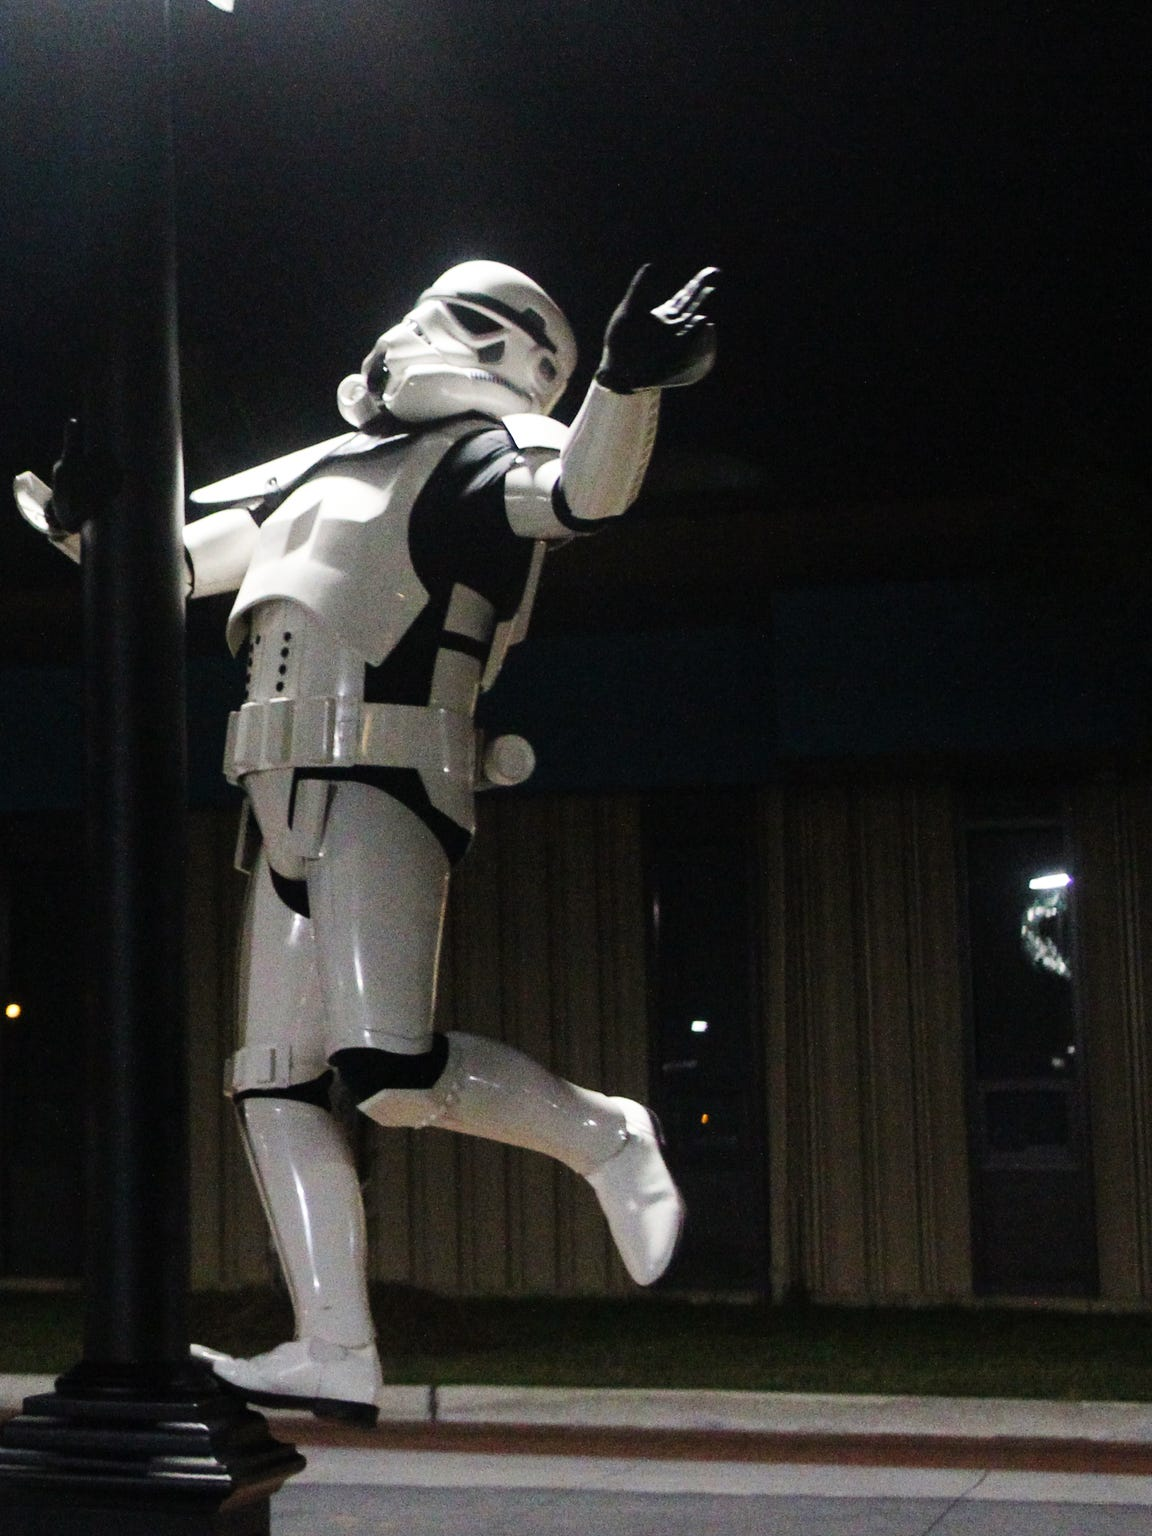 Paul Cassidy, a member of the 501st Legion, poses in Cascades Park in his homemade stormtrooper outfit.